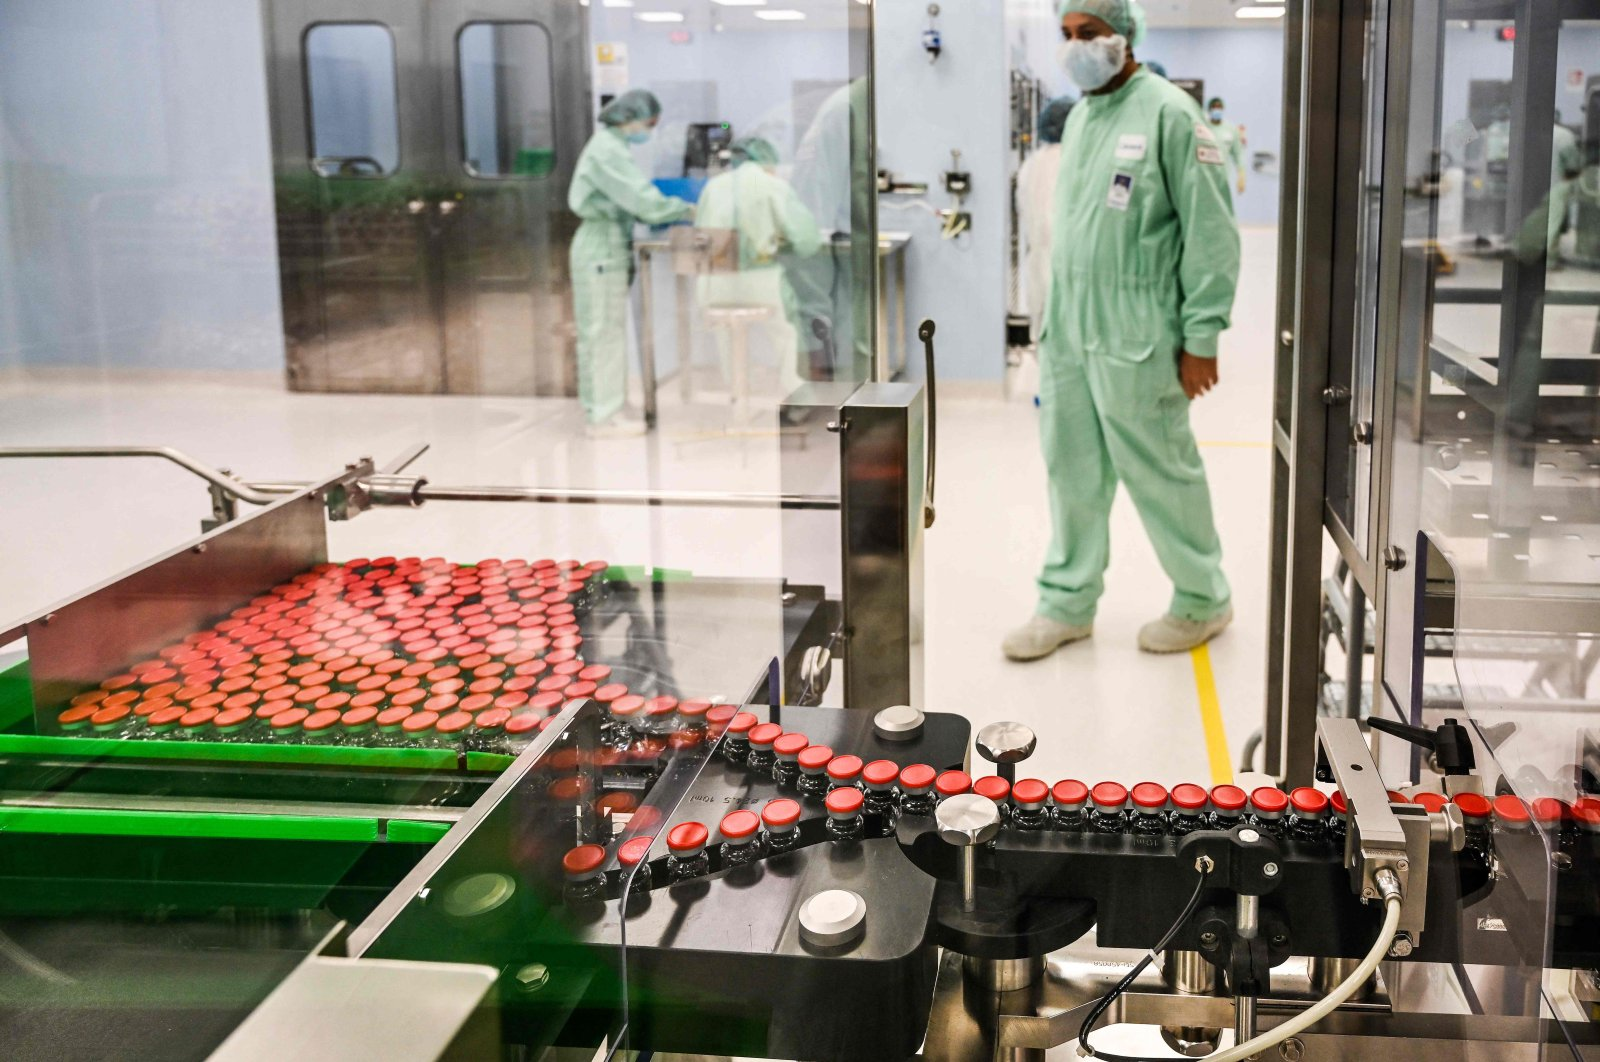 A laboratory technician supervises capped vials during filling and packaging tests for the large-scale production and supply of the University of Oxford's COVID-19 vaccine candidate, AstraZeneca at the Italian biologics' manufacturing facility of multinational corporation Catalent in Anagni, southeast of Rome, Italy, Sept. 11, 2020. (AFP Photo)